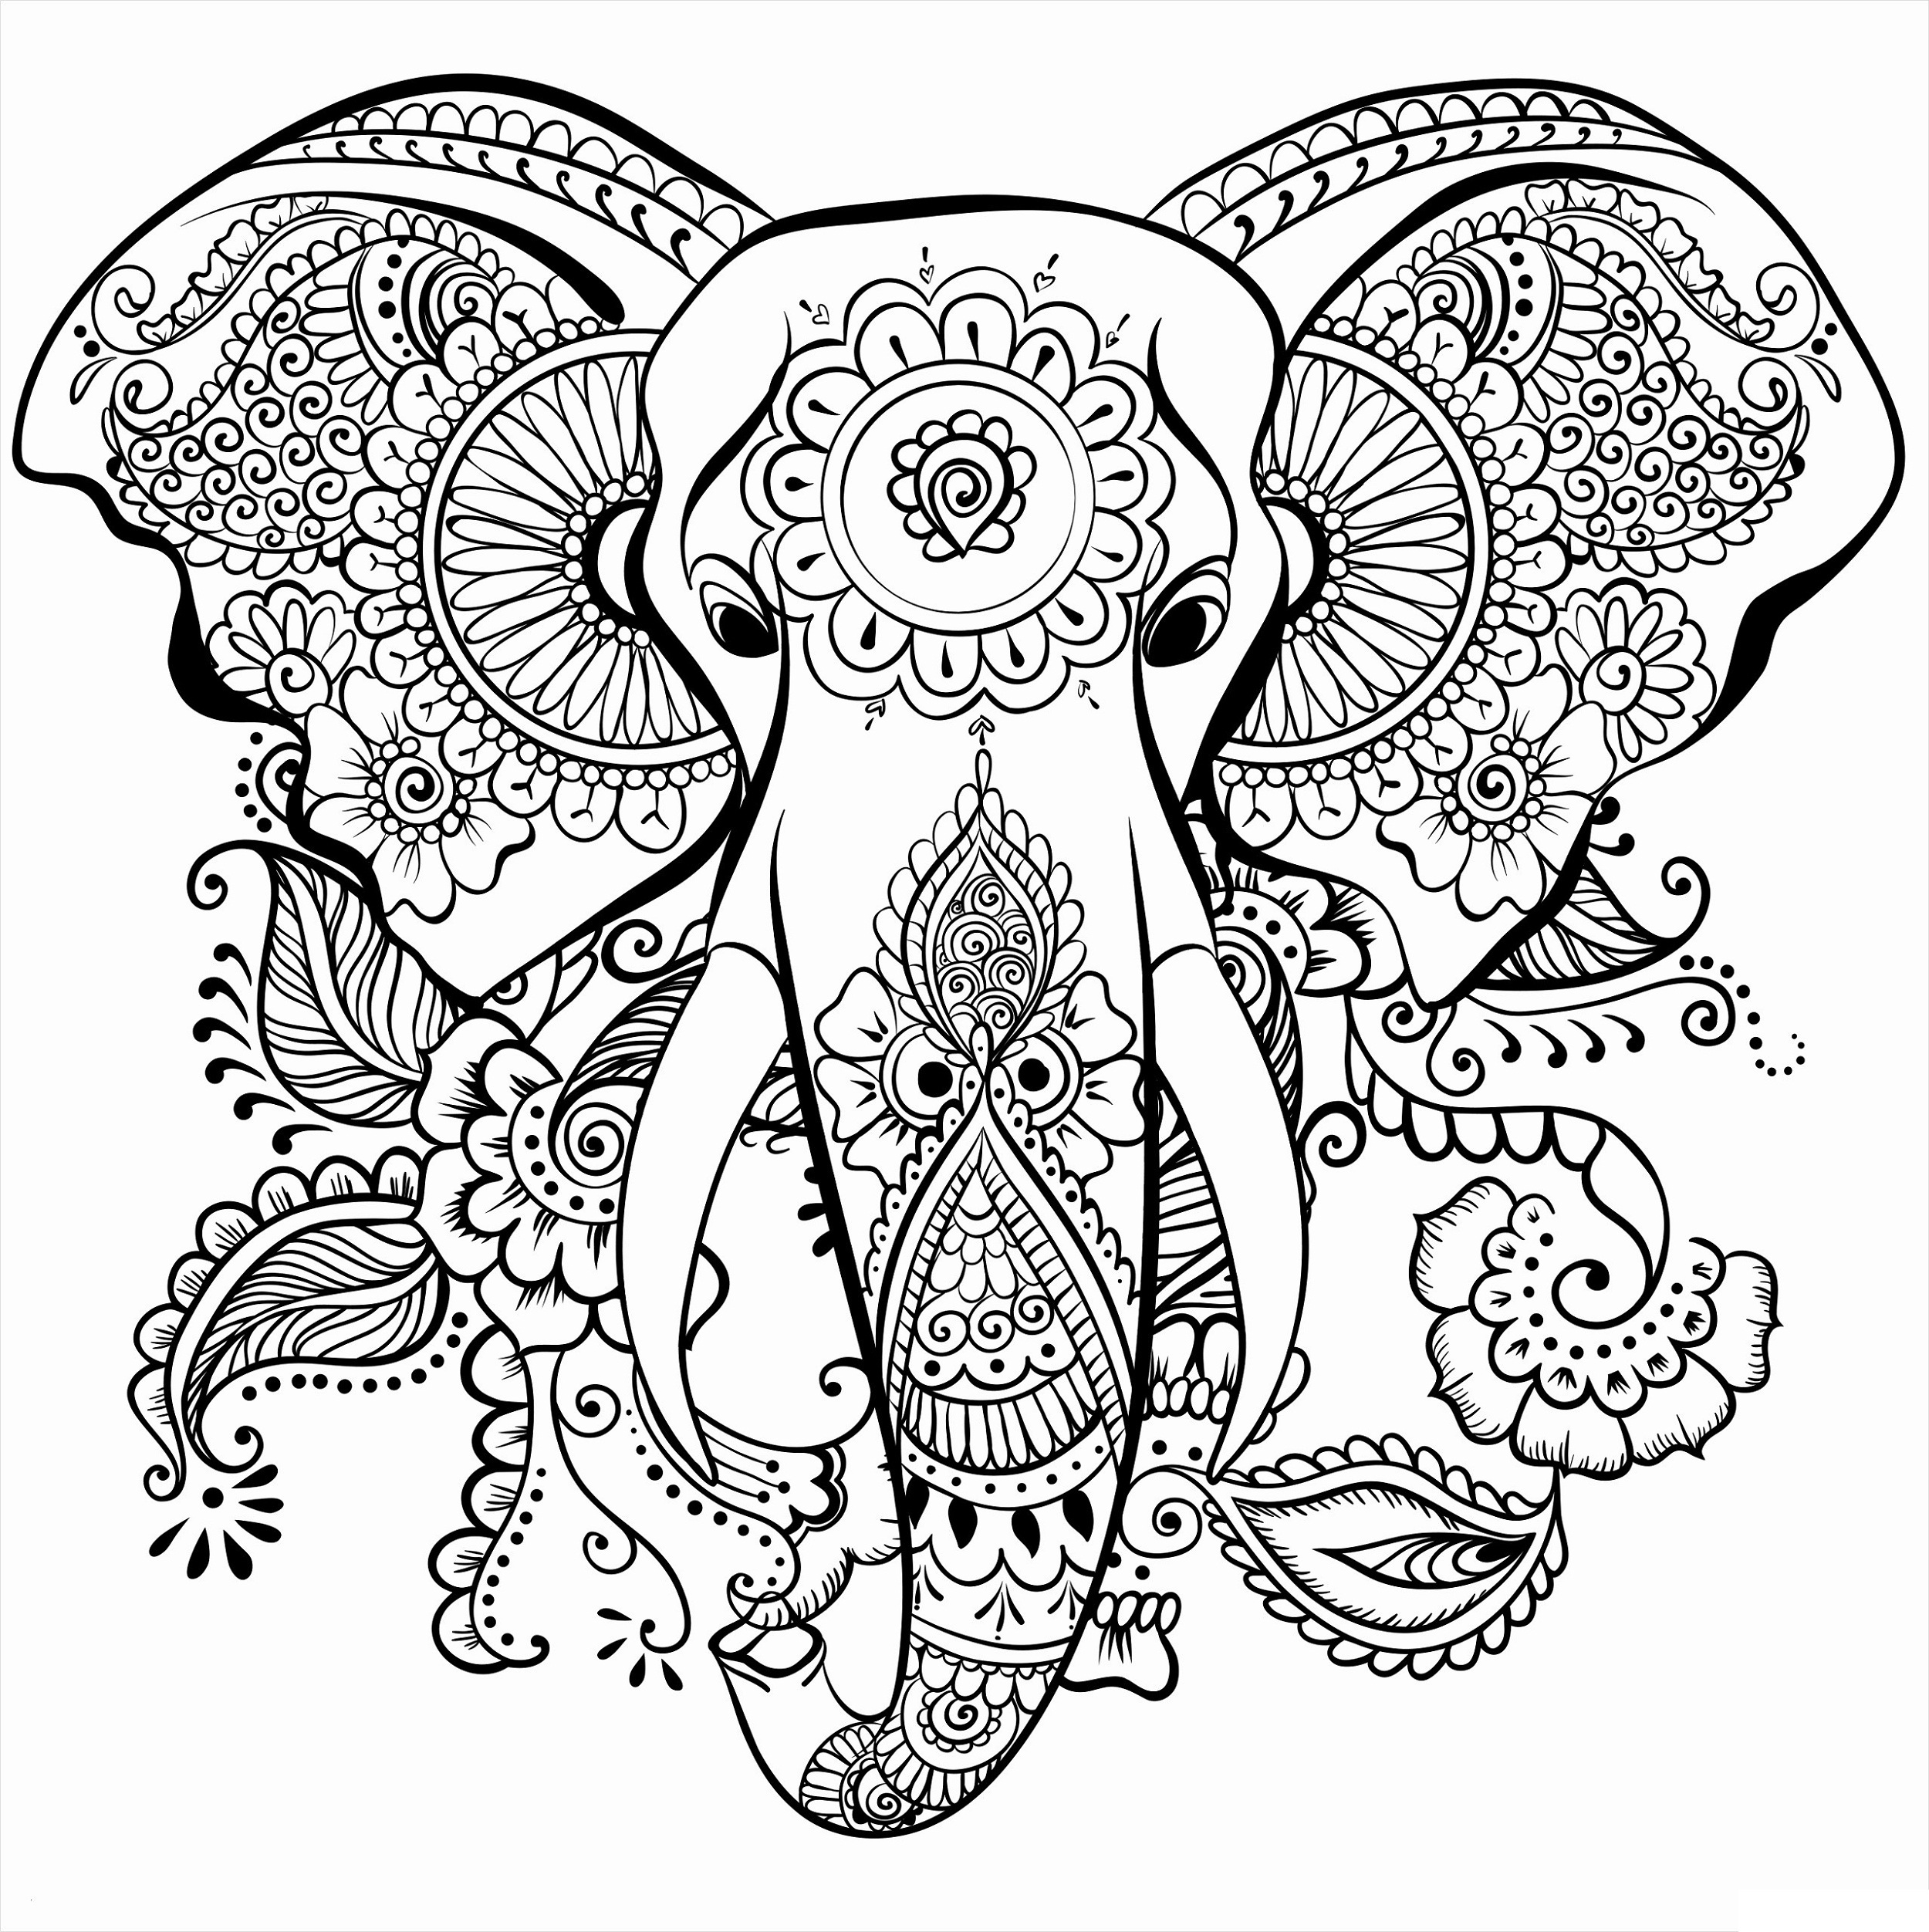 coloring prints for adults free printable abstract coloring pages for adults prints coloring for adults